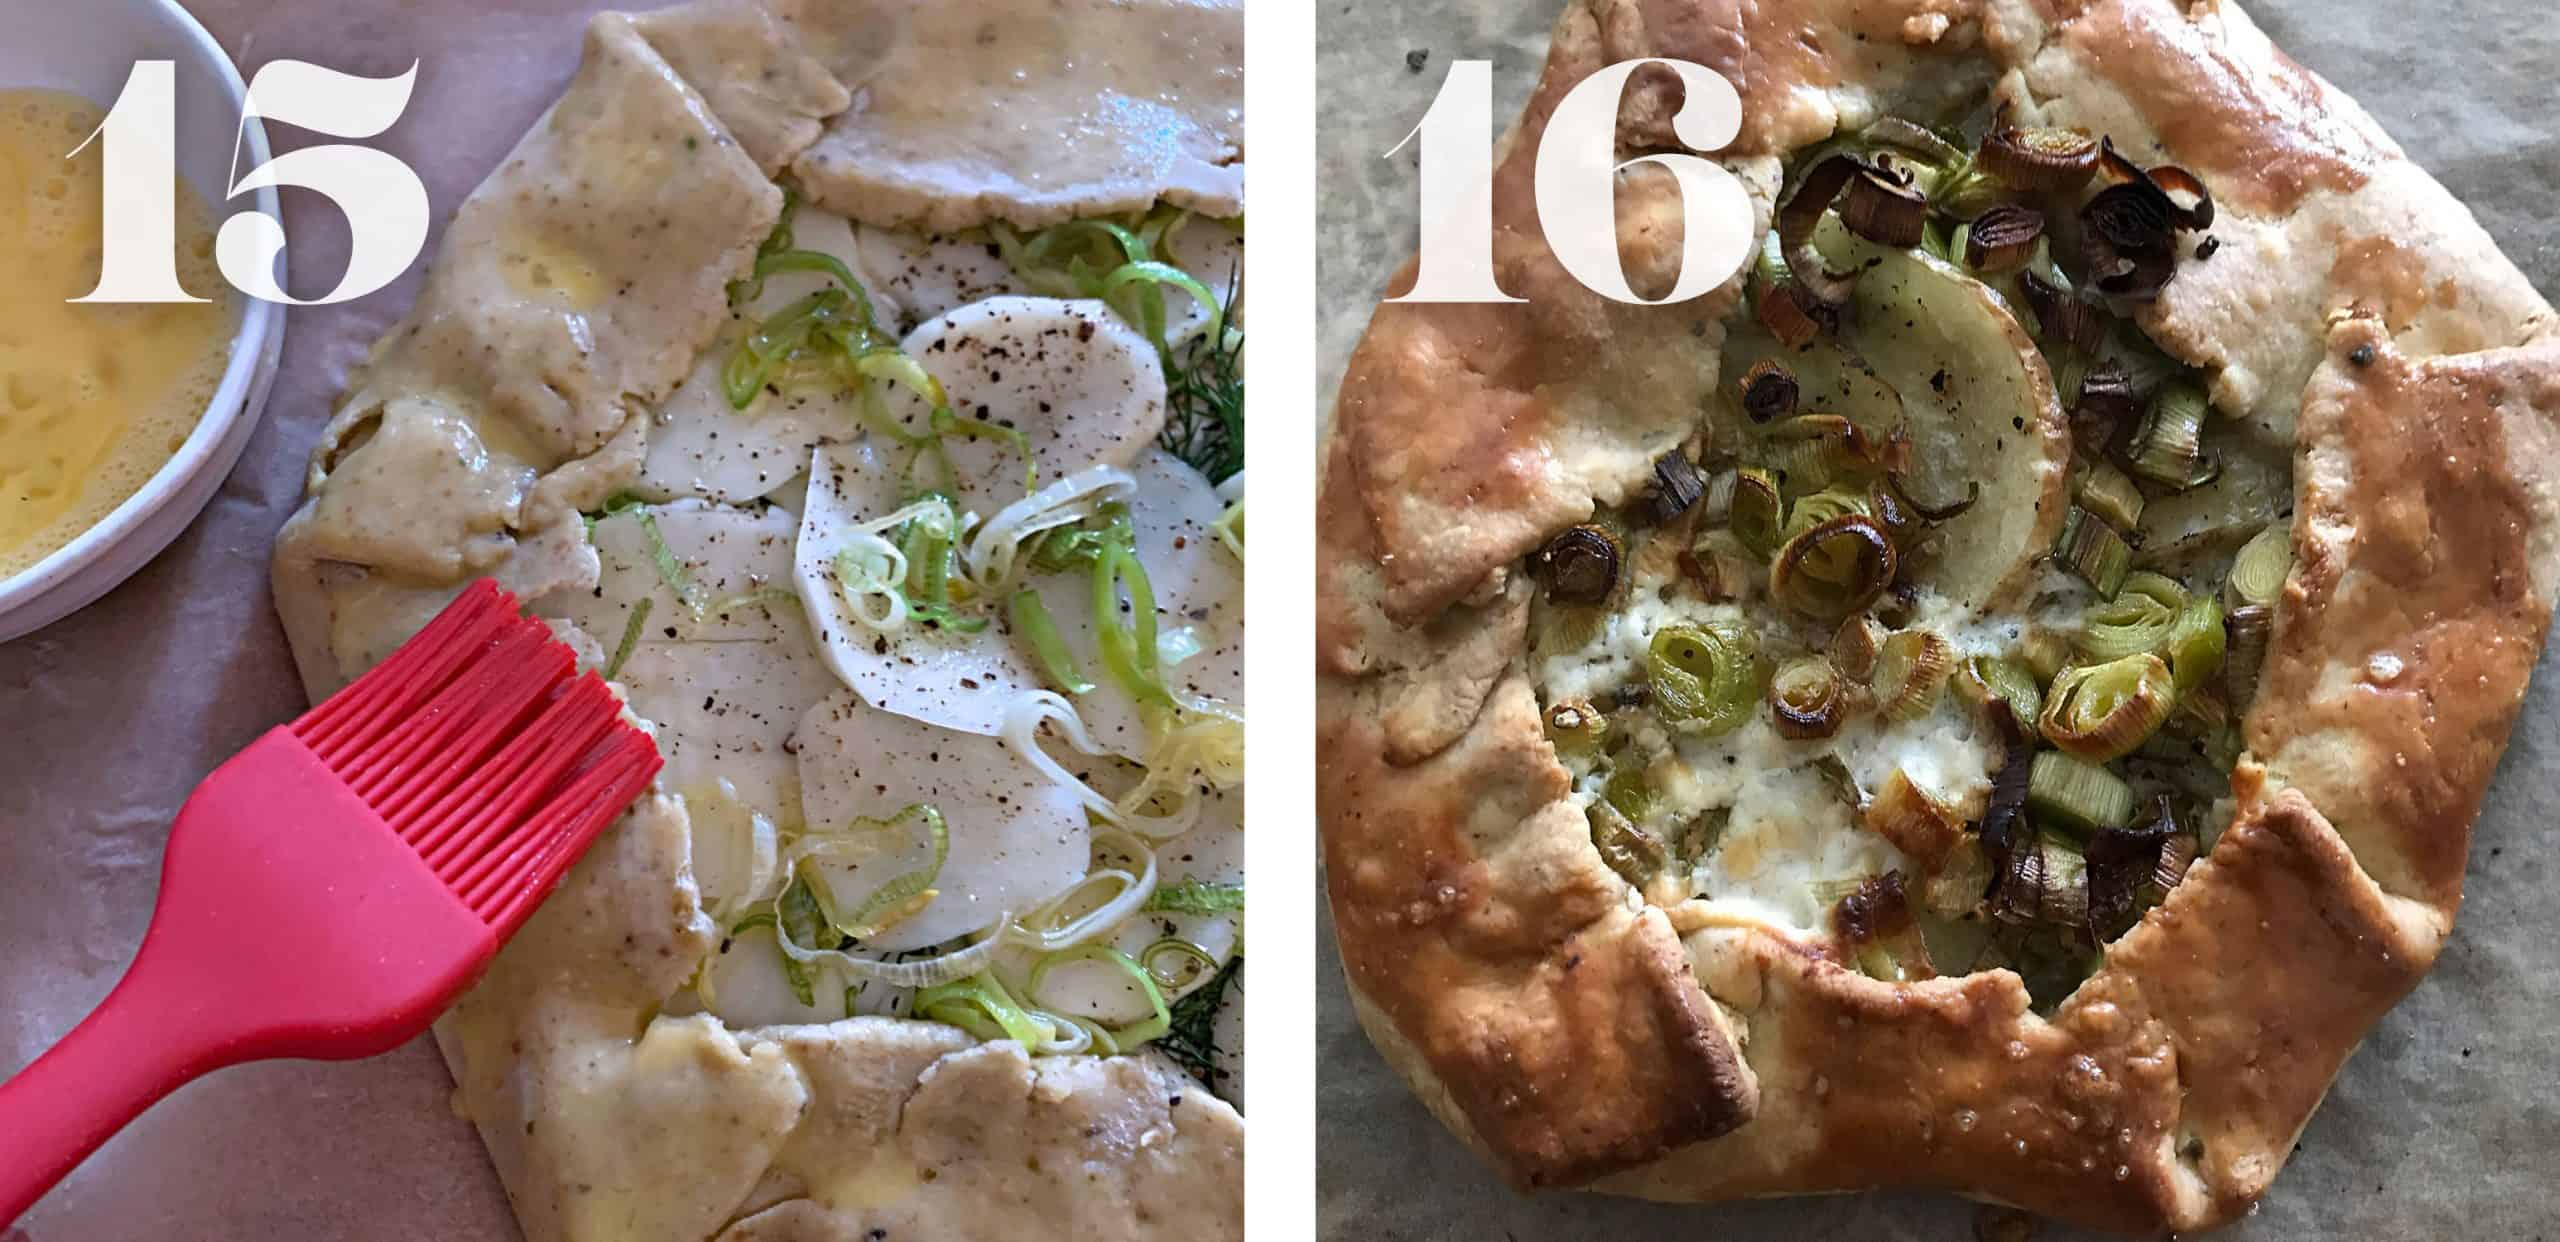 Brusing egg wash on galette dough. Cooked leek and potato galette.